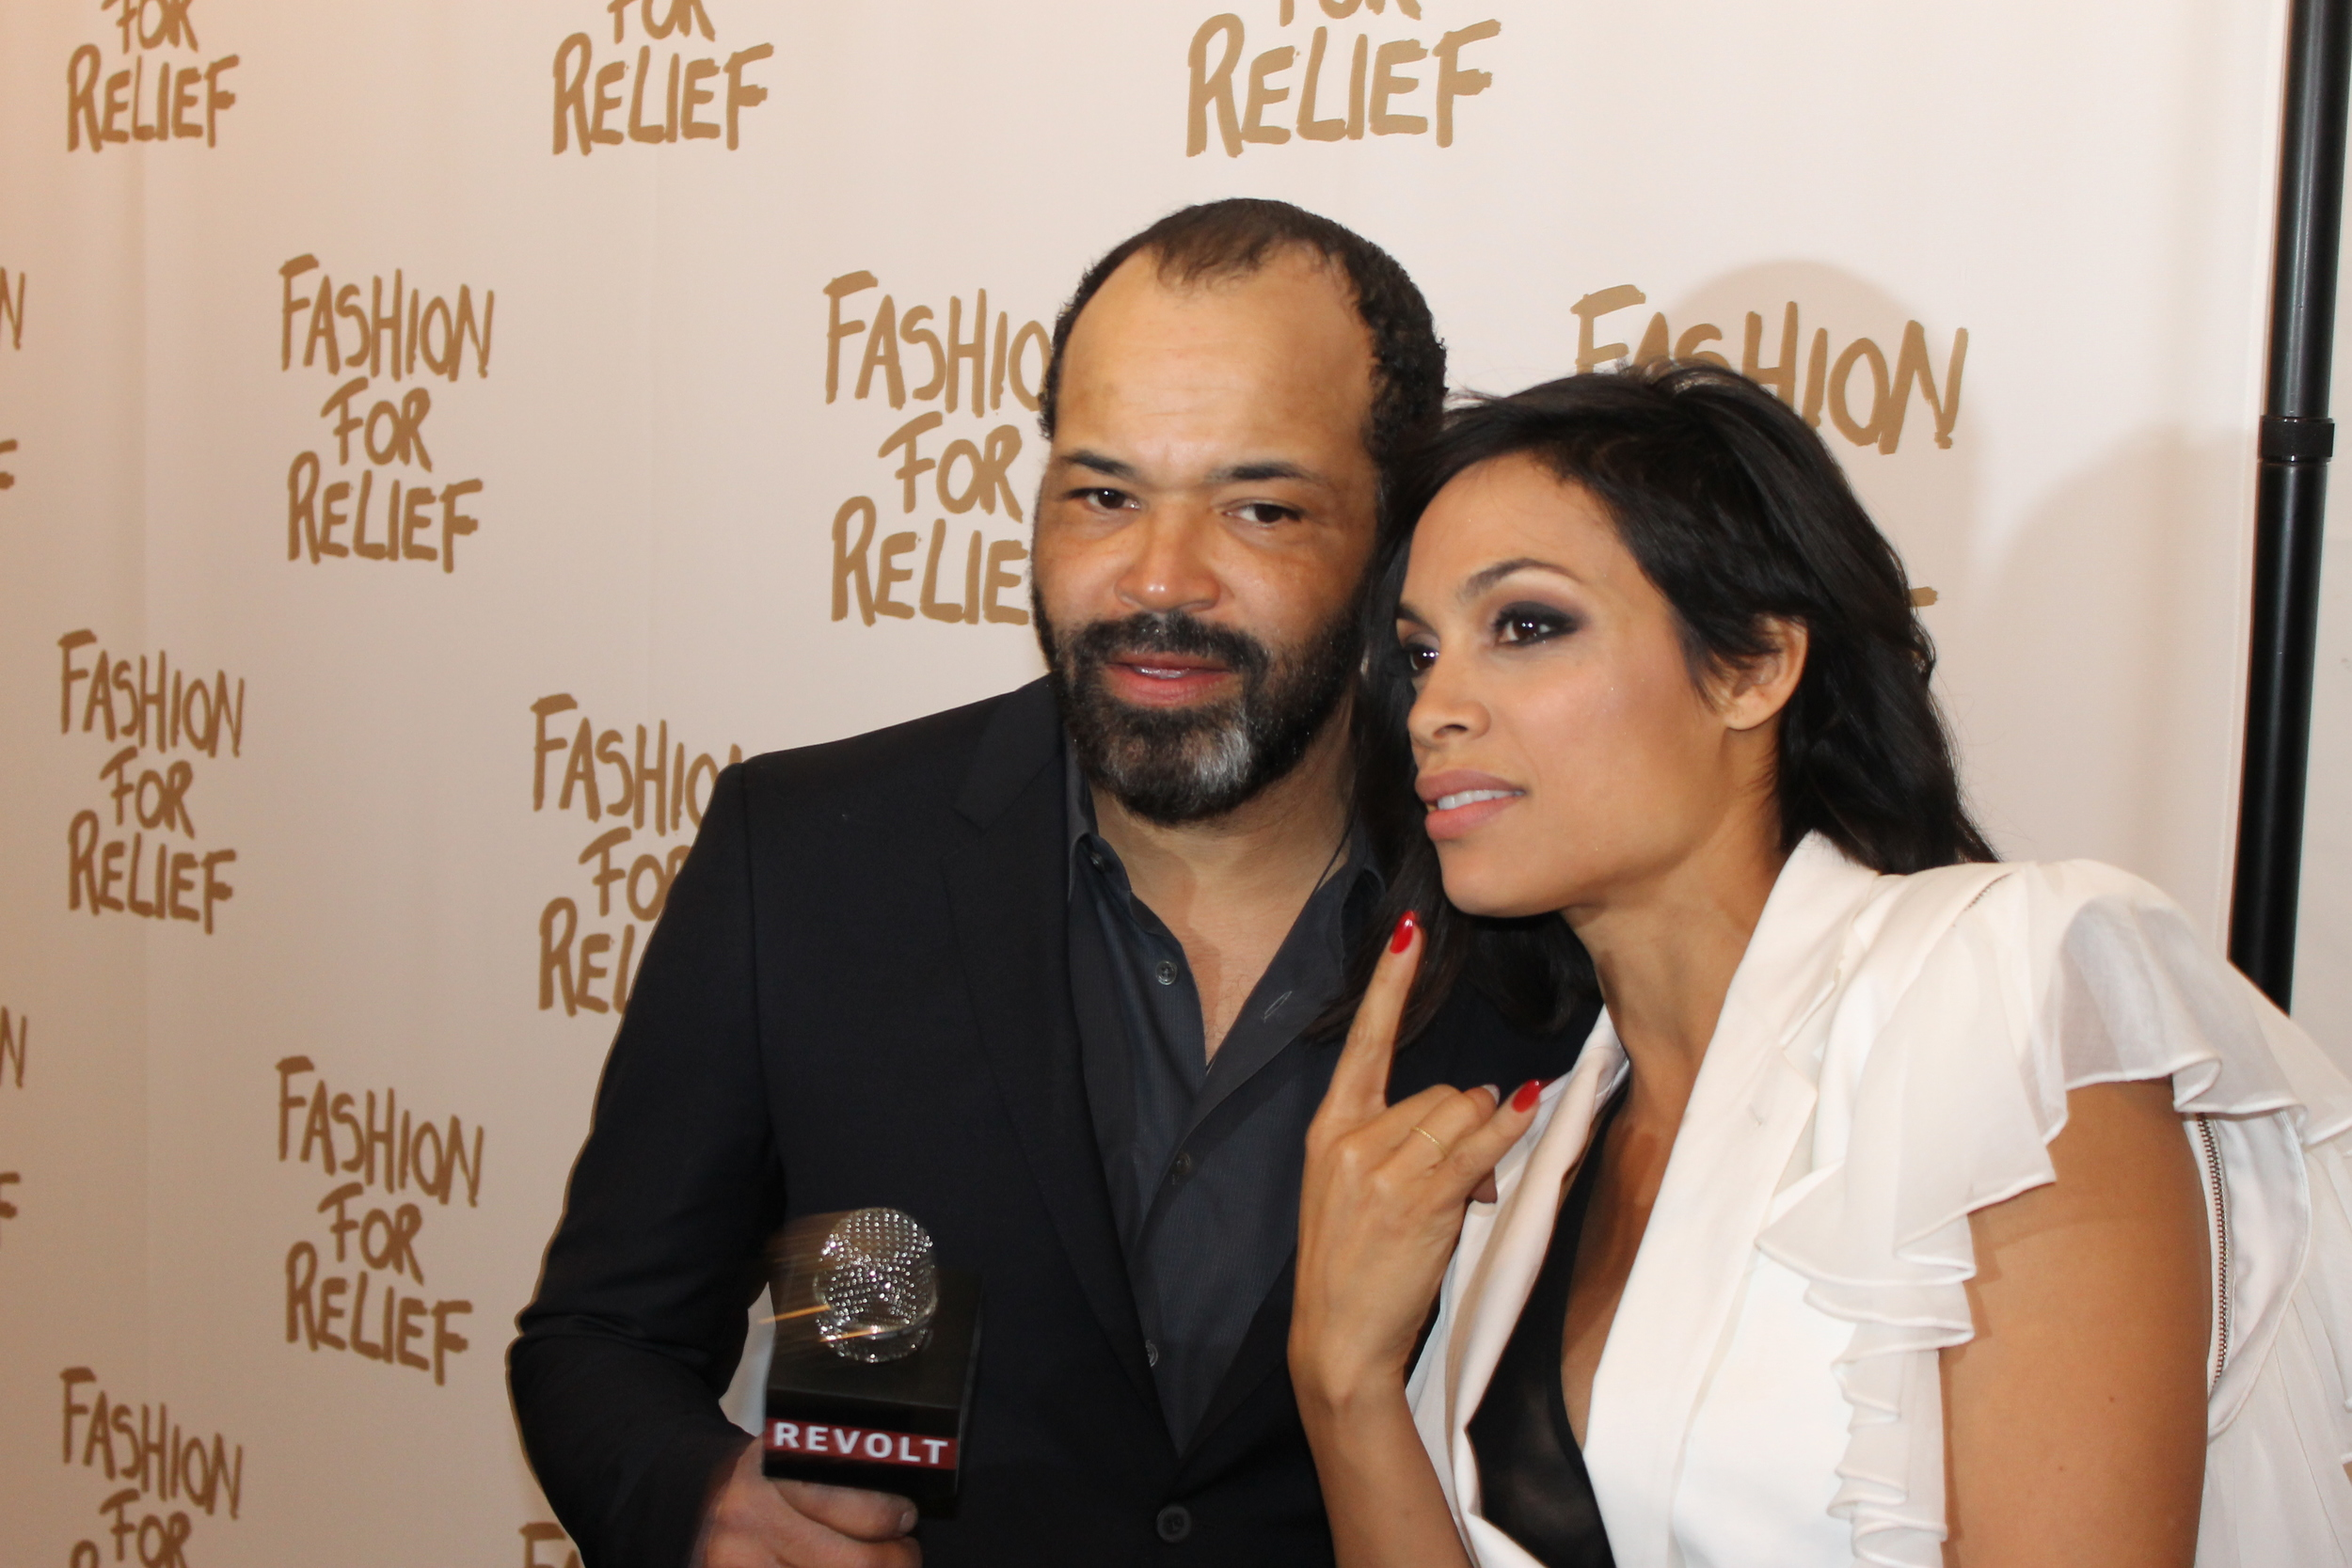 Rosario posed with actor friend Jeffrey Wright